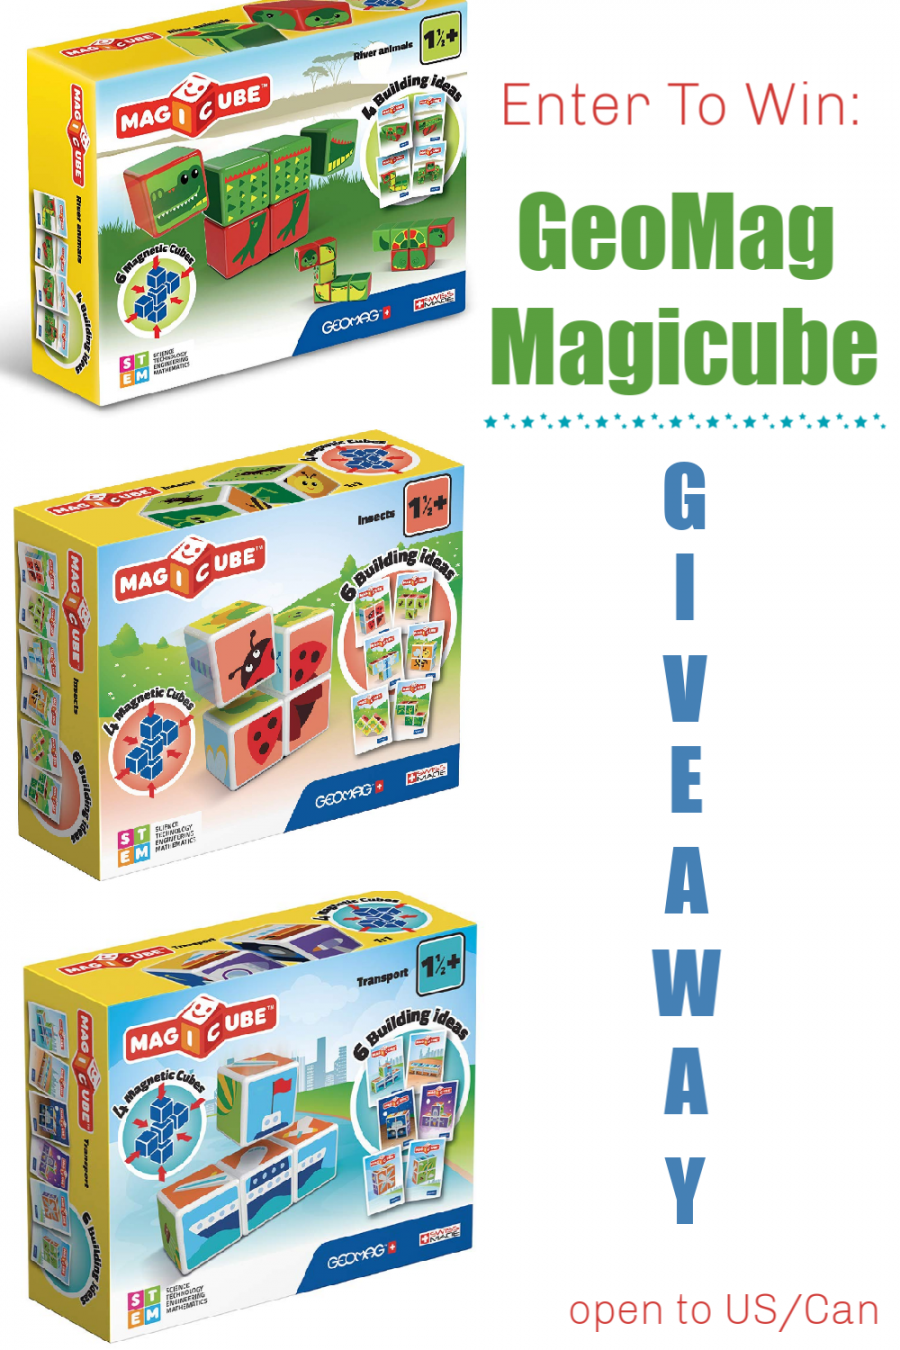 GeoMag Magicube Giveaway